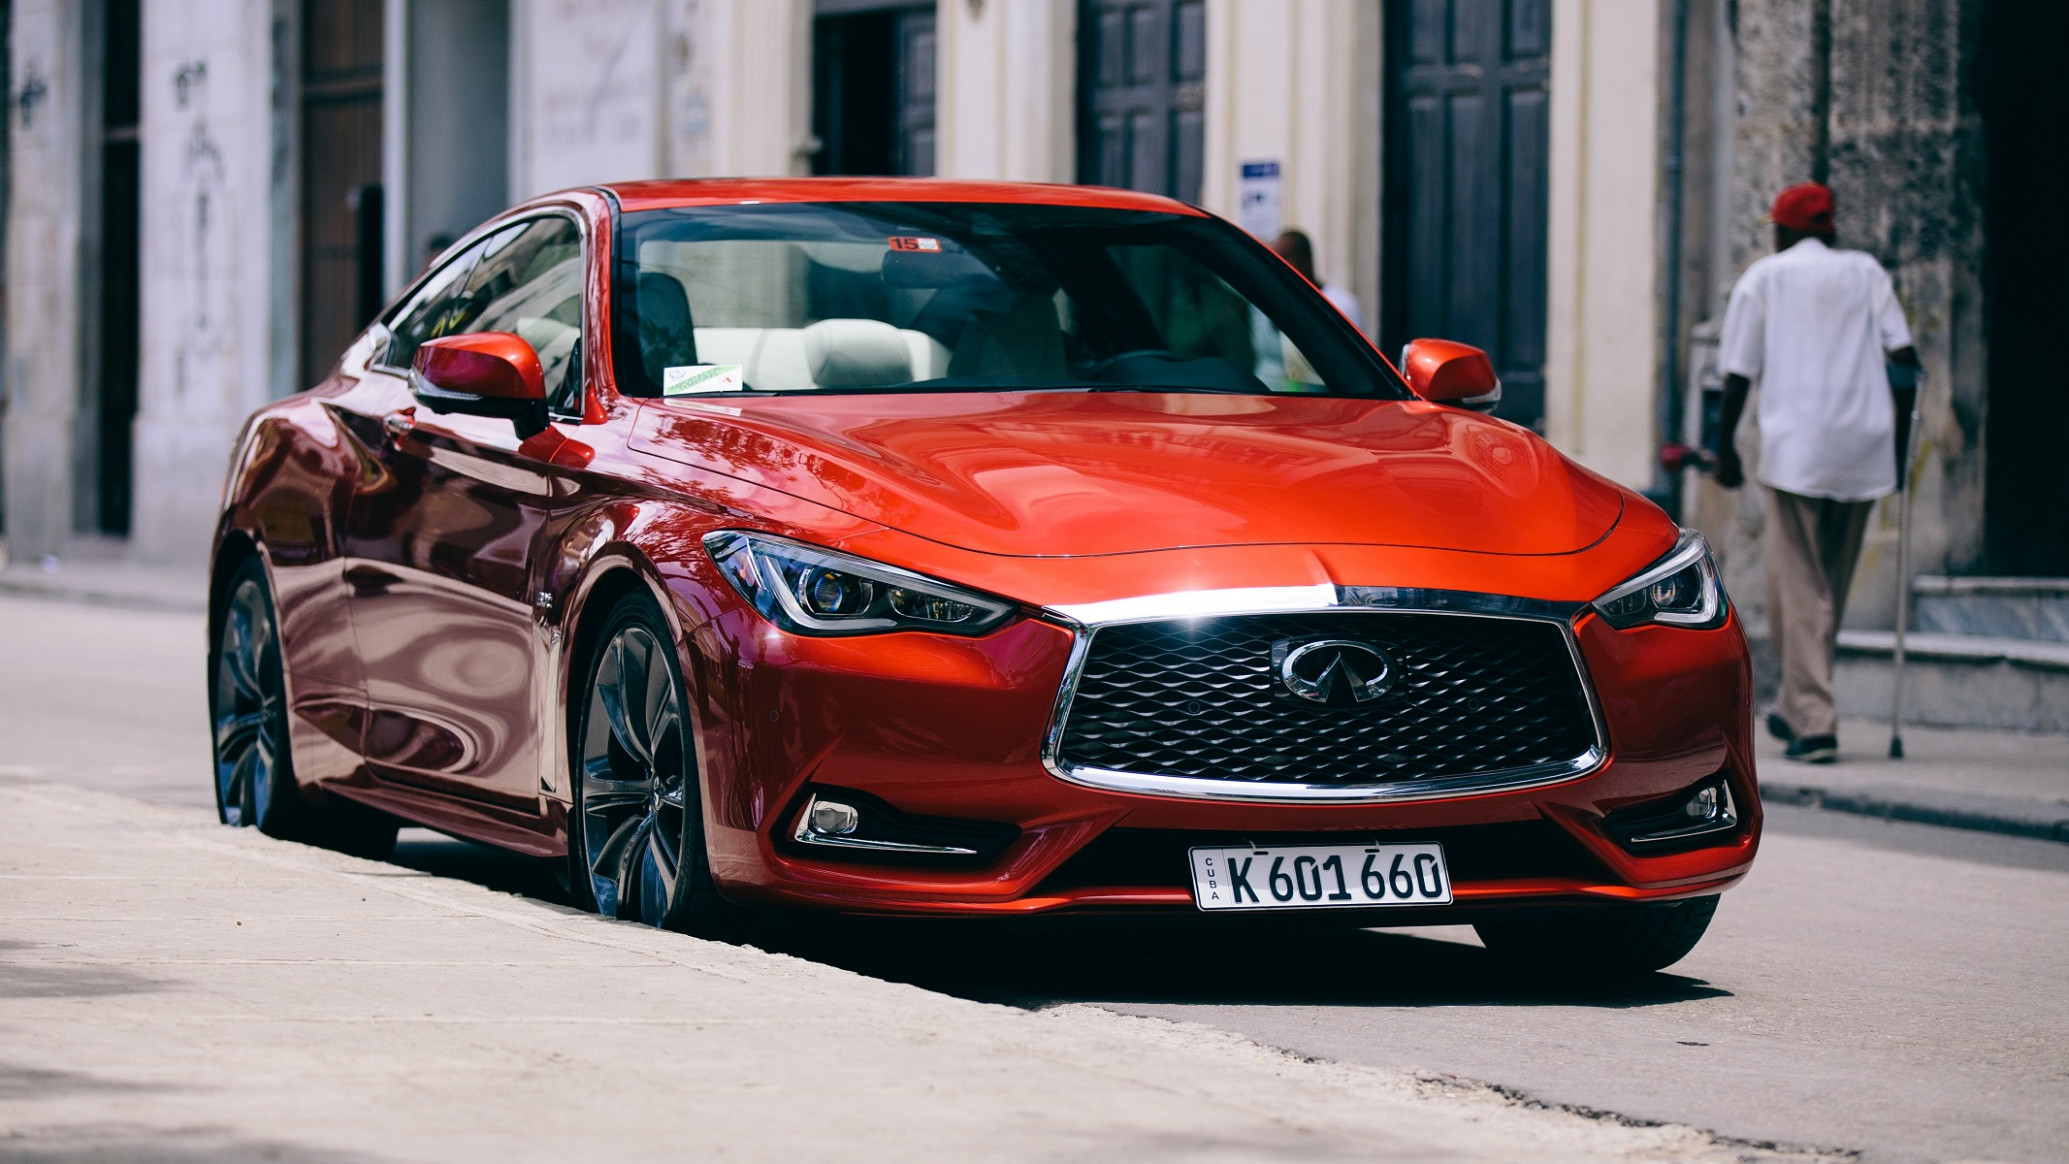 Price and Release date 2022 Infiniti Q70